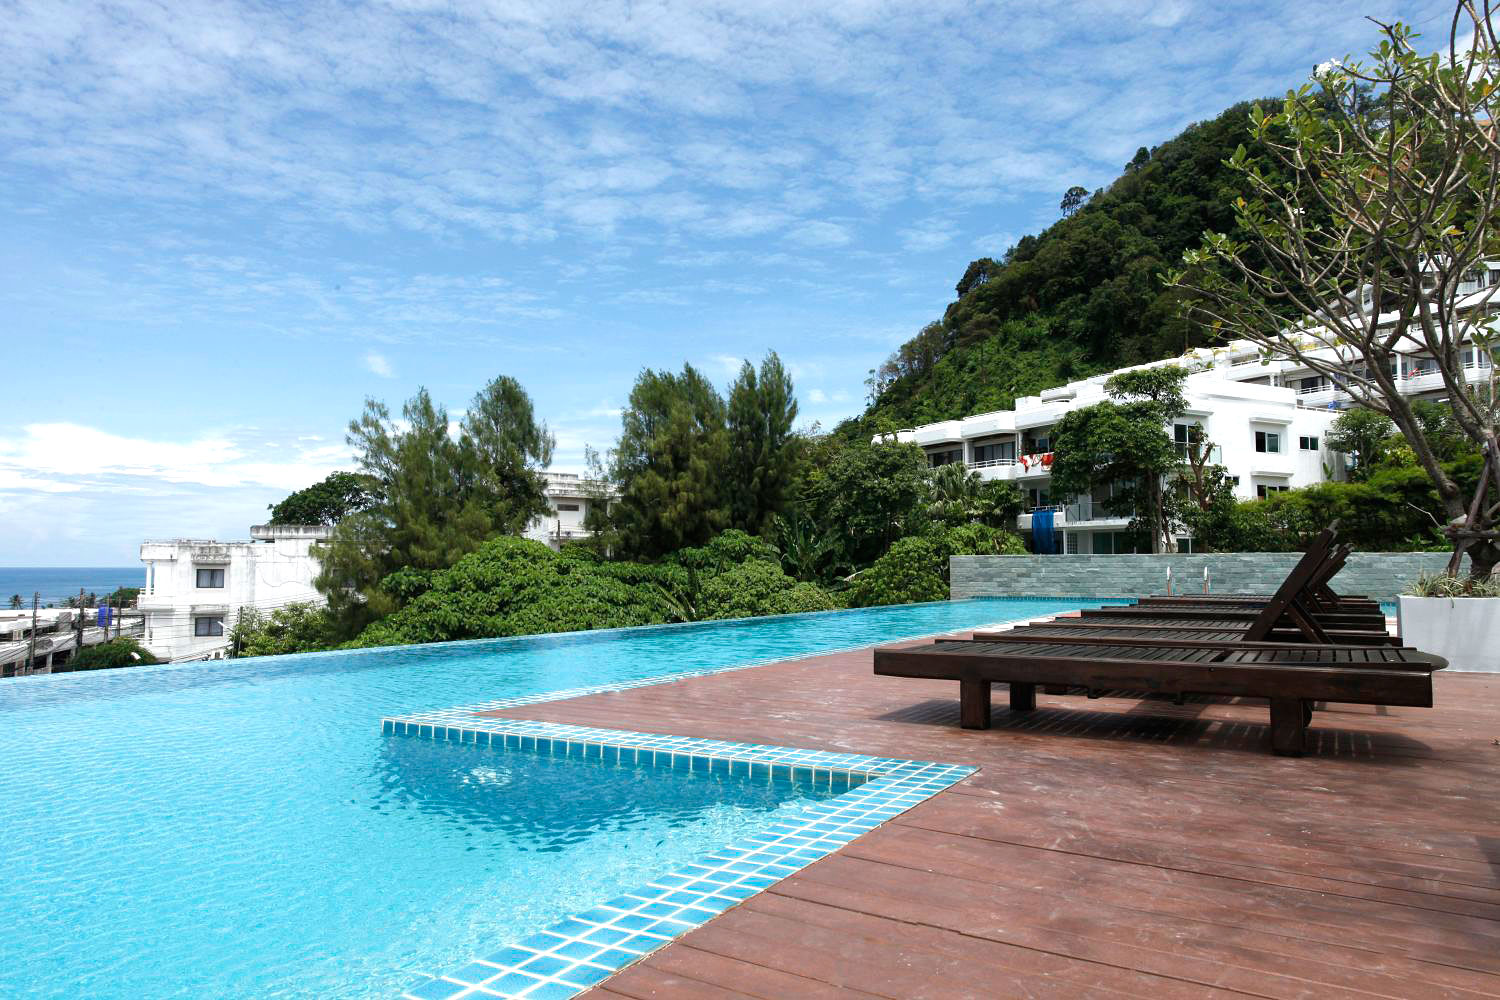 Photo Gallery | The Unity Patong I, Phuket, Thailand